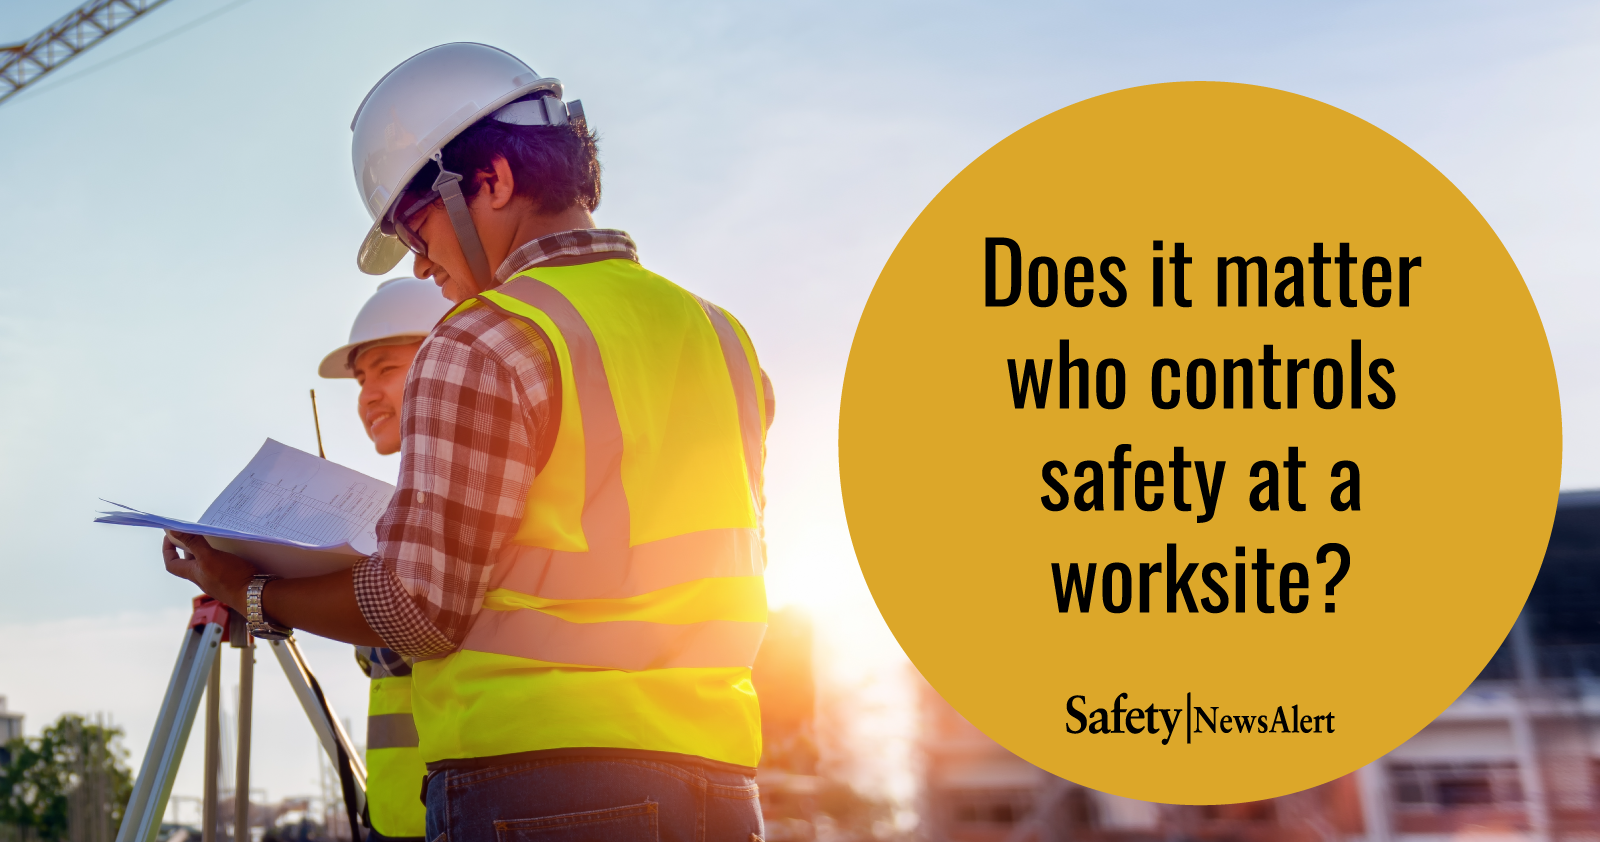 does it matter who controls safety at a worksite